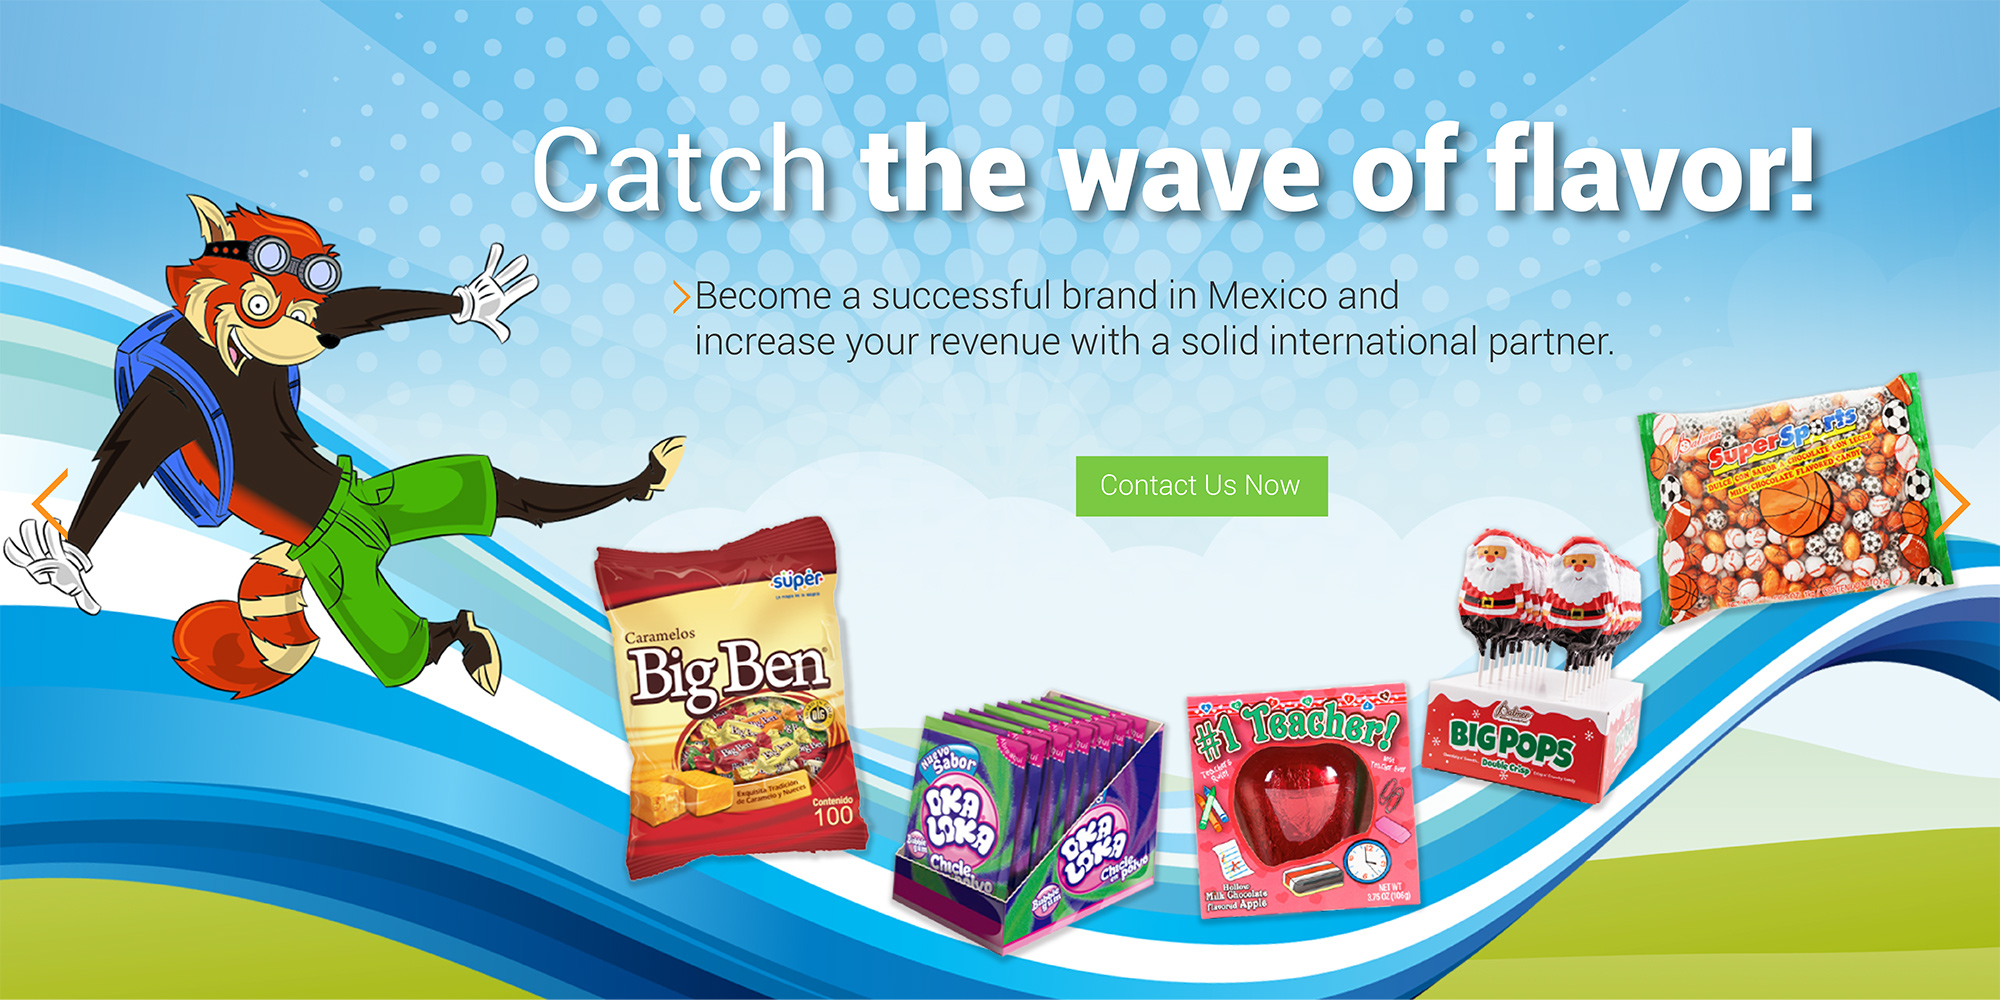 PAF Catch the Wave of Flavor